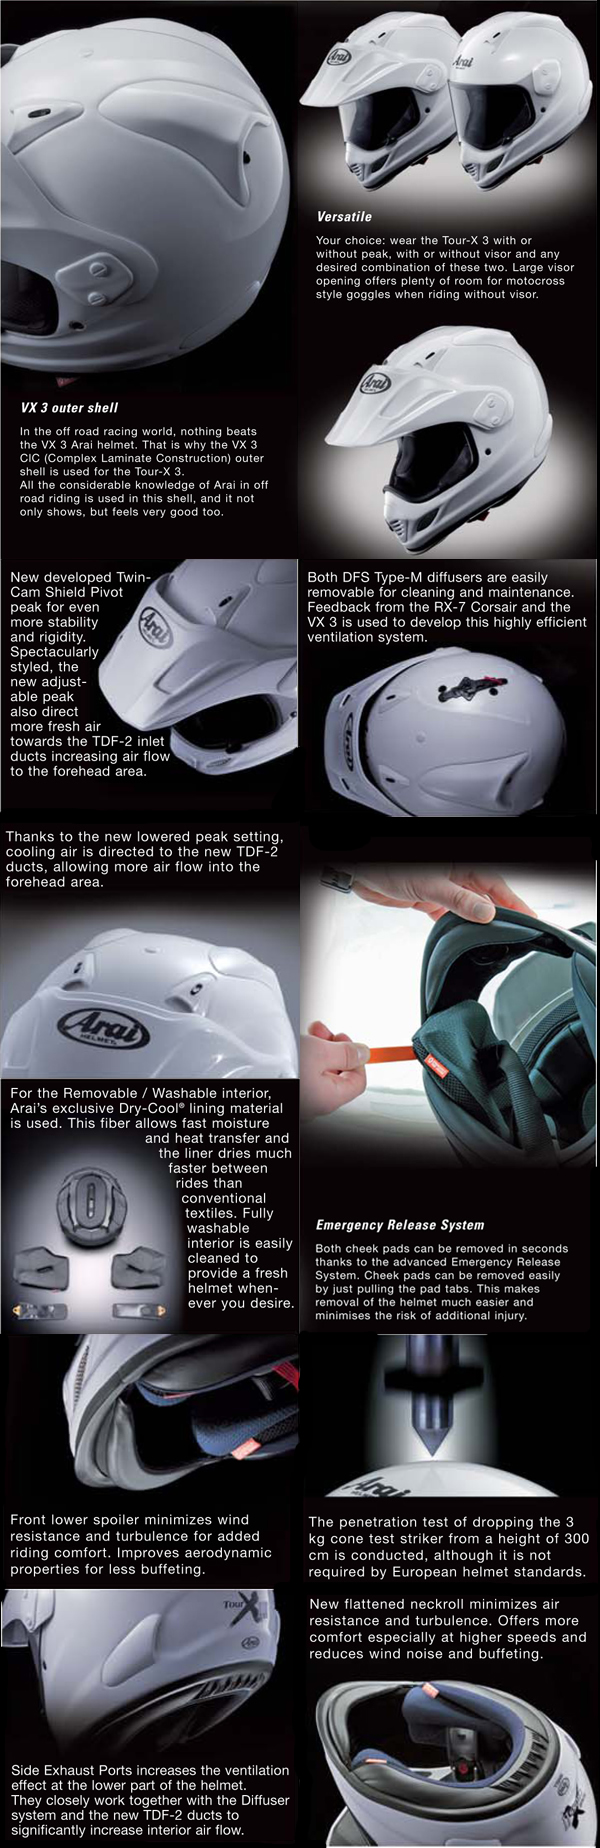 http://images.esellerpro.com/2189/I/77/arai-tour-x3-12.jpg